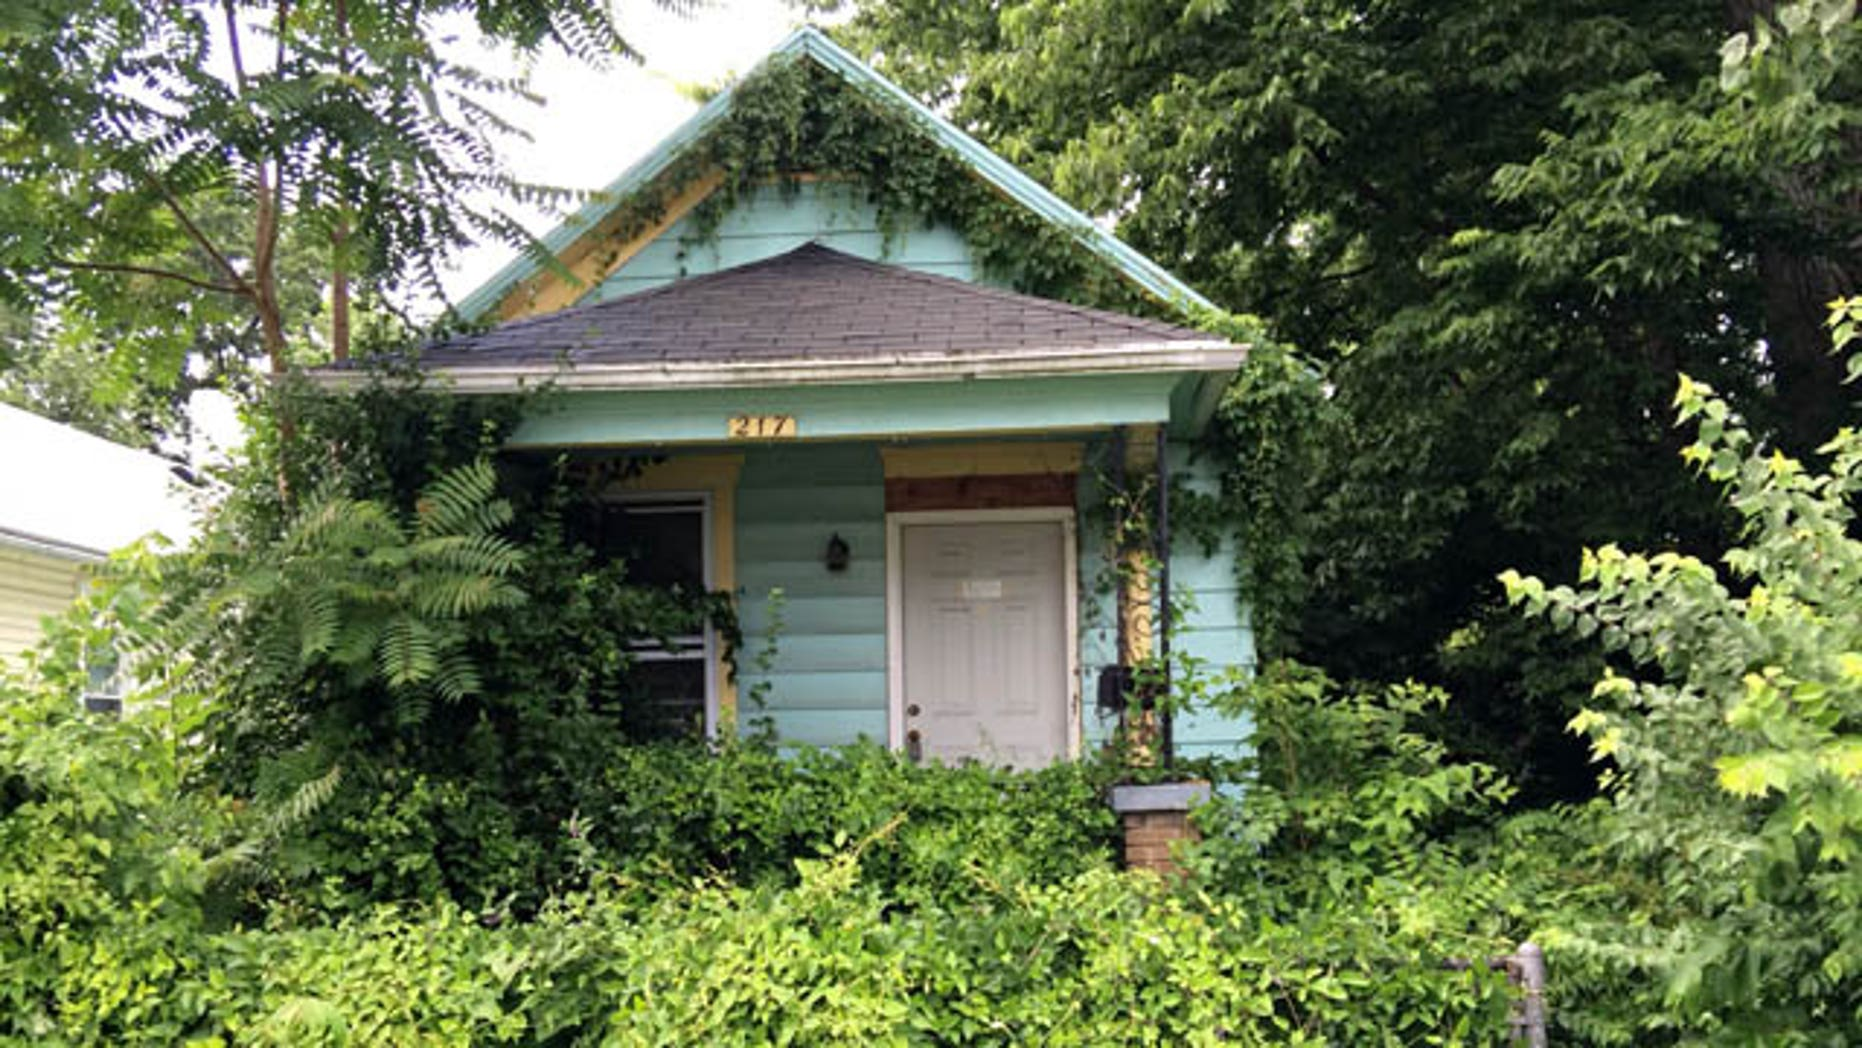 June 16, 2014: This photo shows the vacant house in Dayton, Ohio where an adolescent boy found the mummified body of a man hanging in a closet Sunday.  (AP Photo/The Dayton Daily News, Marshall Gorby)